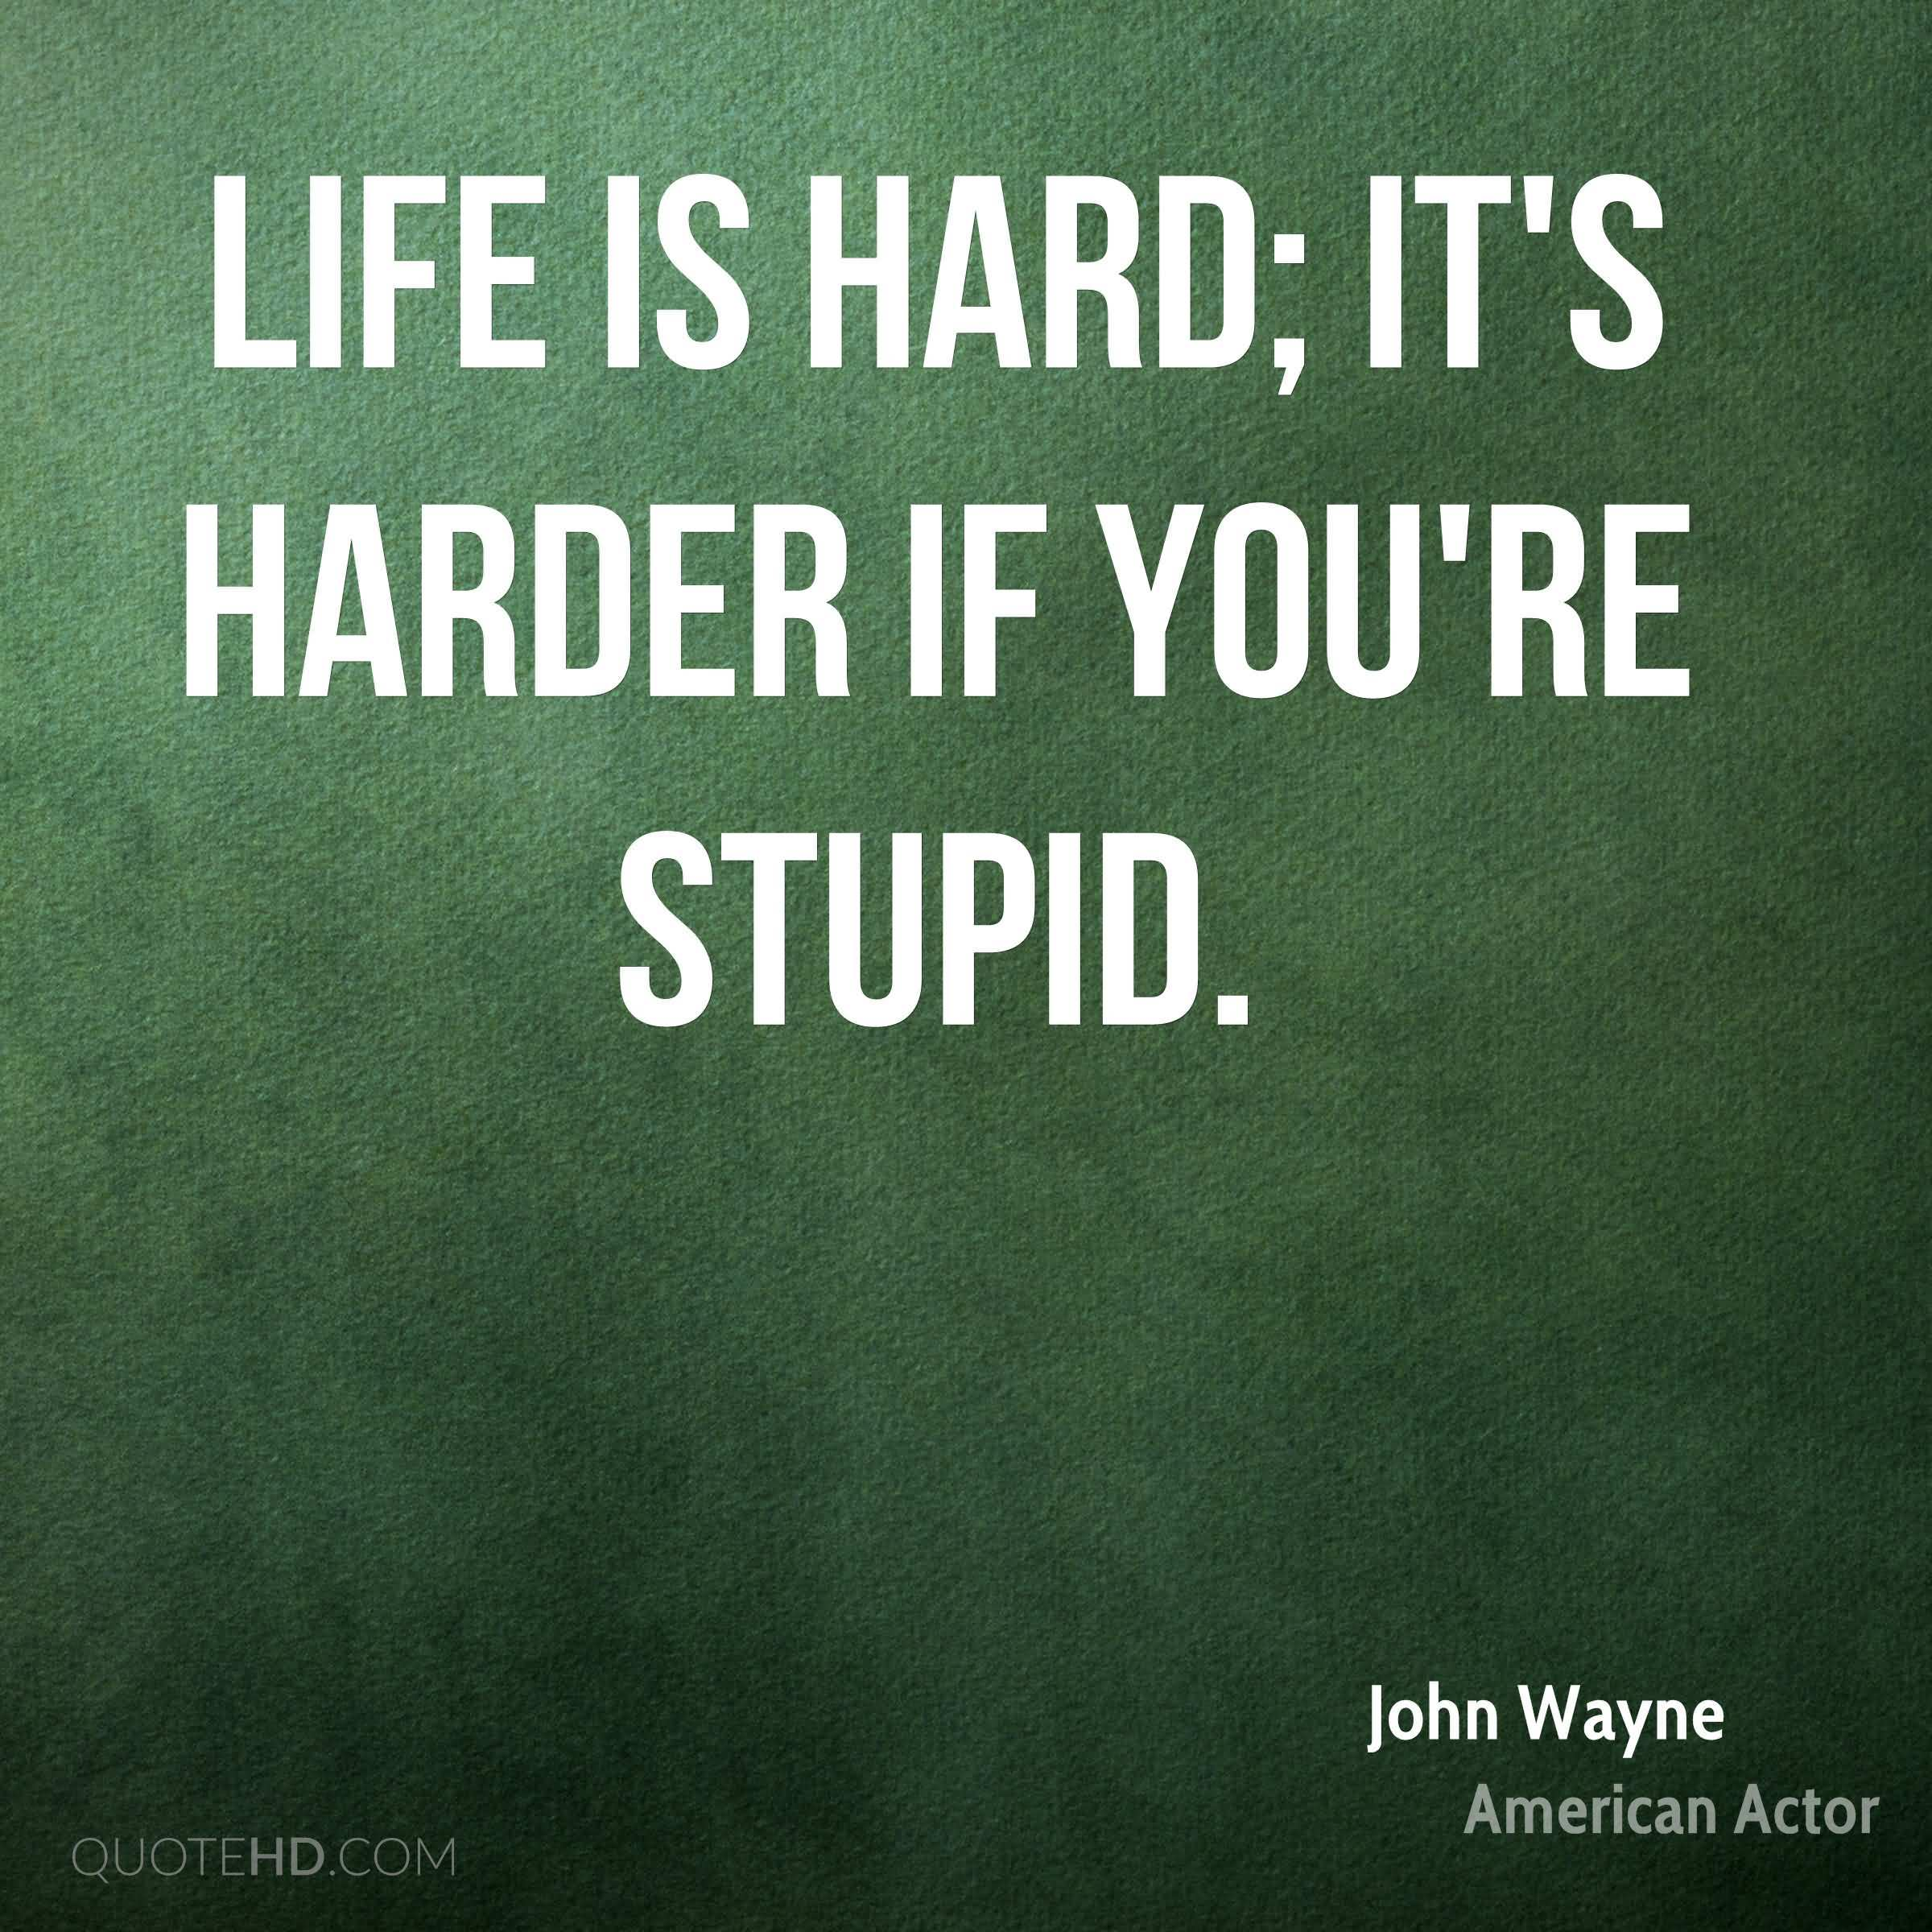 Life Is Hard Quotes: 20 Life Is Hard Quotes And Sayings Collection